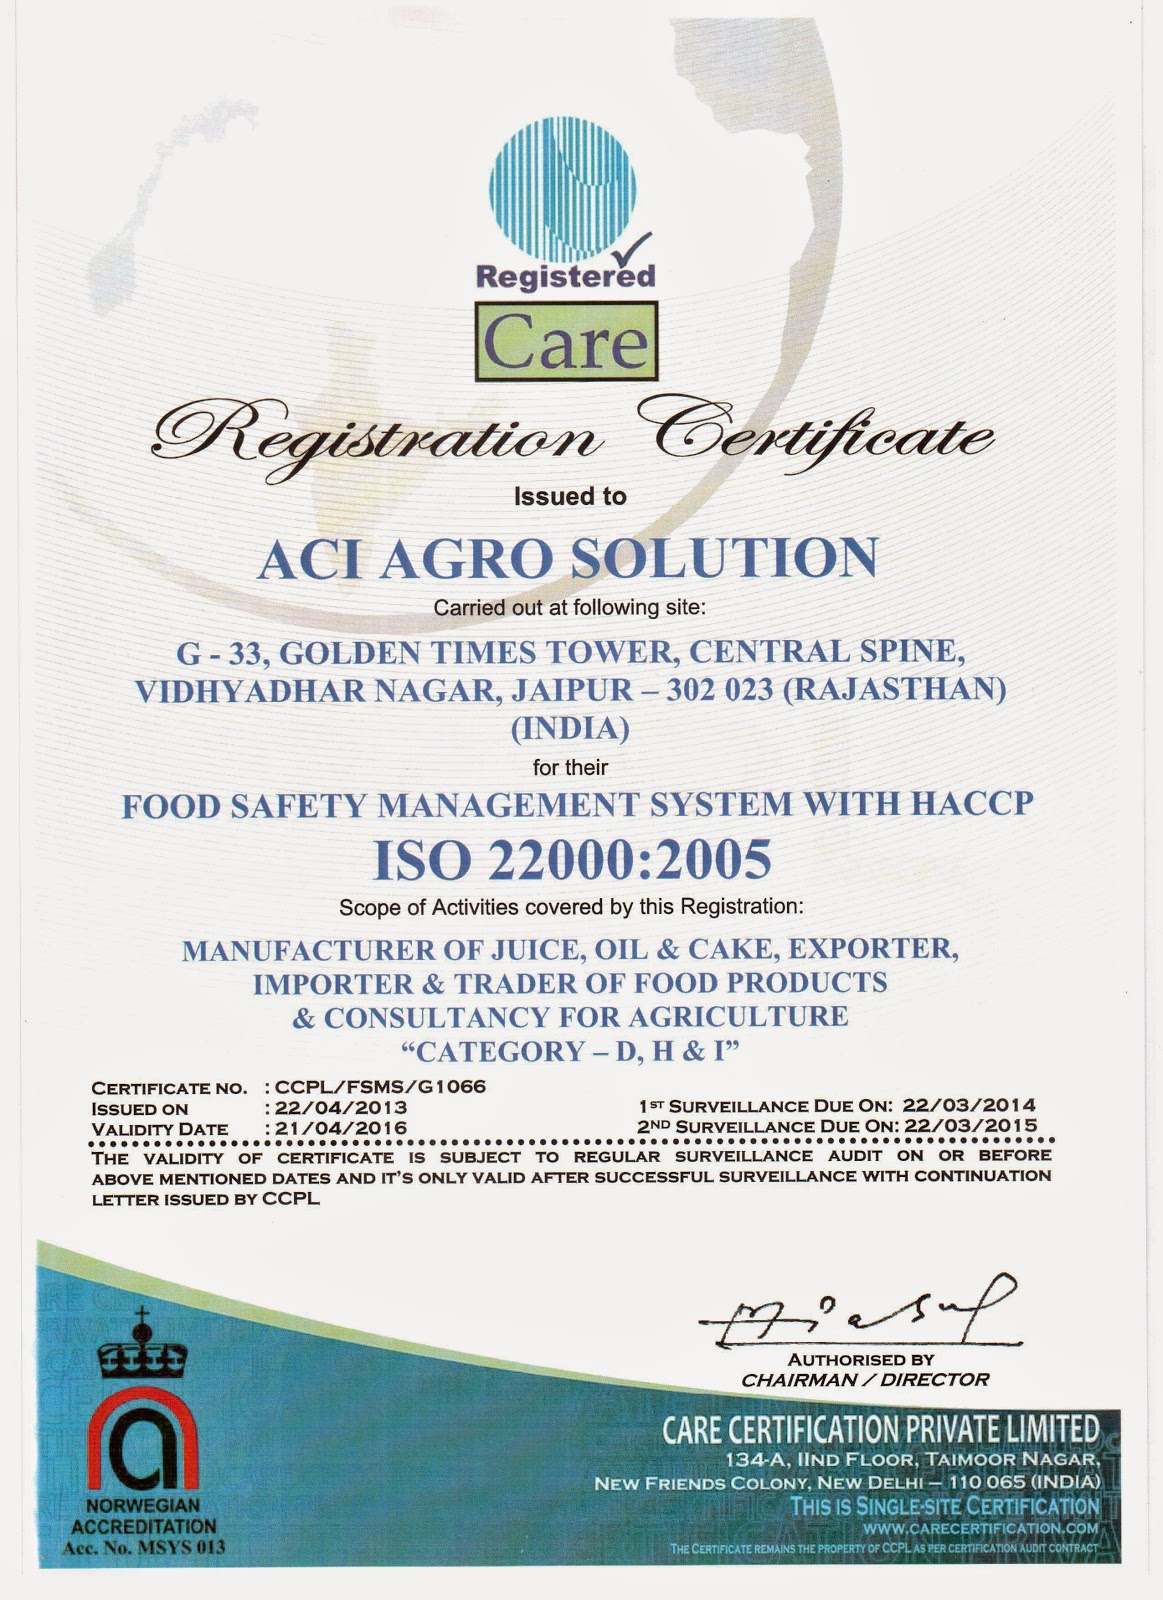 MUSHROOM CULTIVATION IN INDIA : ACI AGRO SOLUTION CERTIFICATE